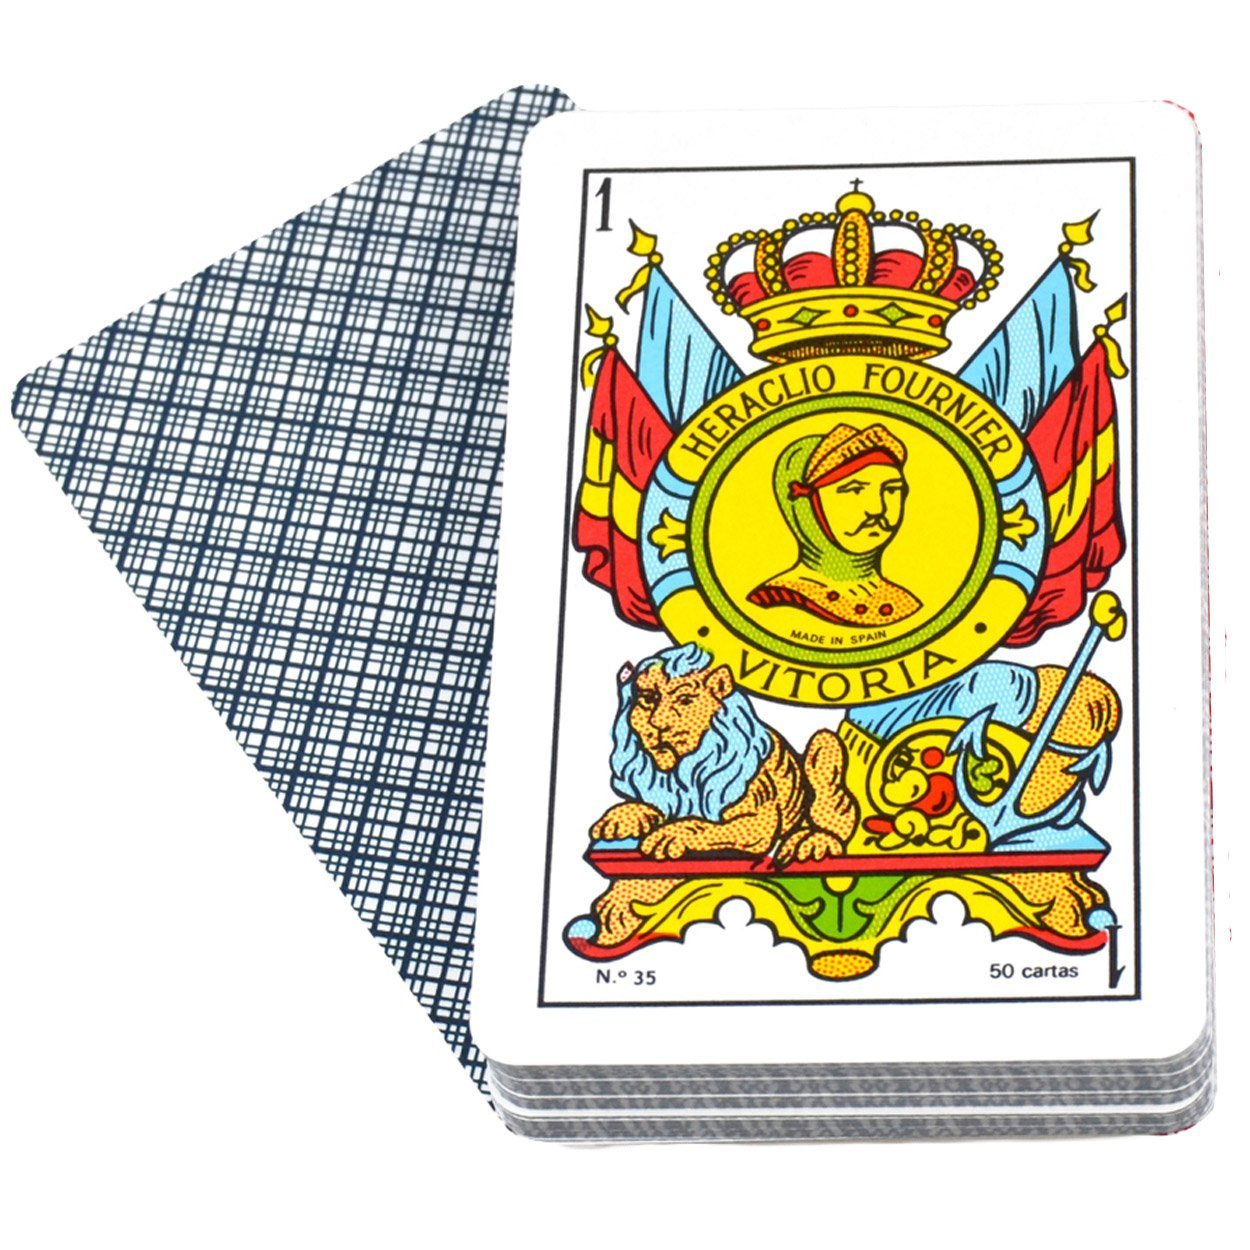 Deck of 50 Fournier Spanish Playing Cards Catalan Face #35 Cello Wrap - Baraja Española Catalana